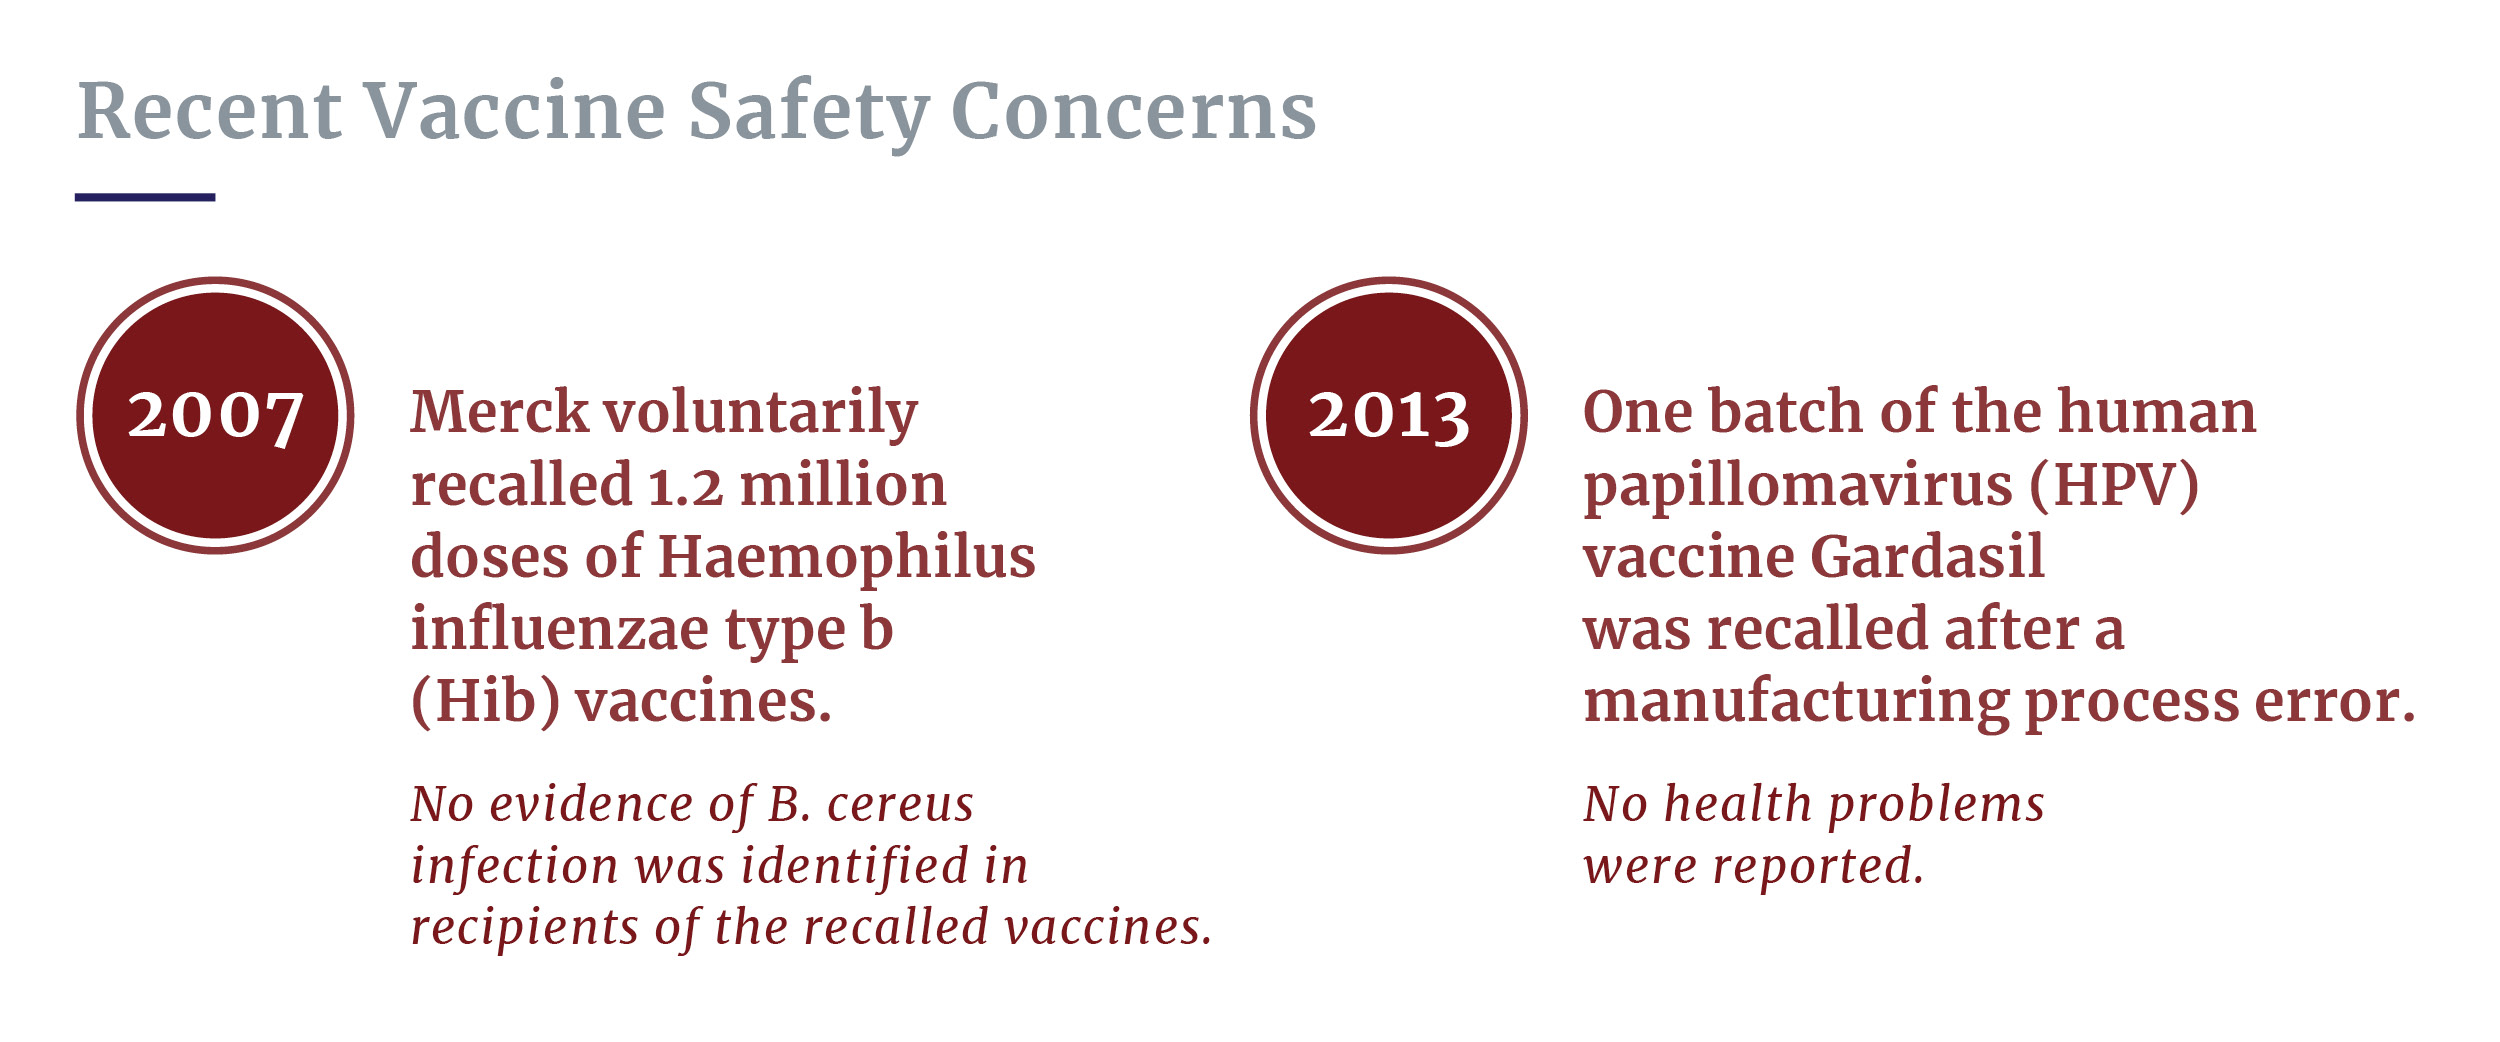 Recent vaccine safety issues